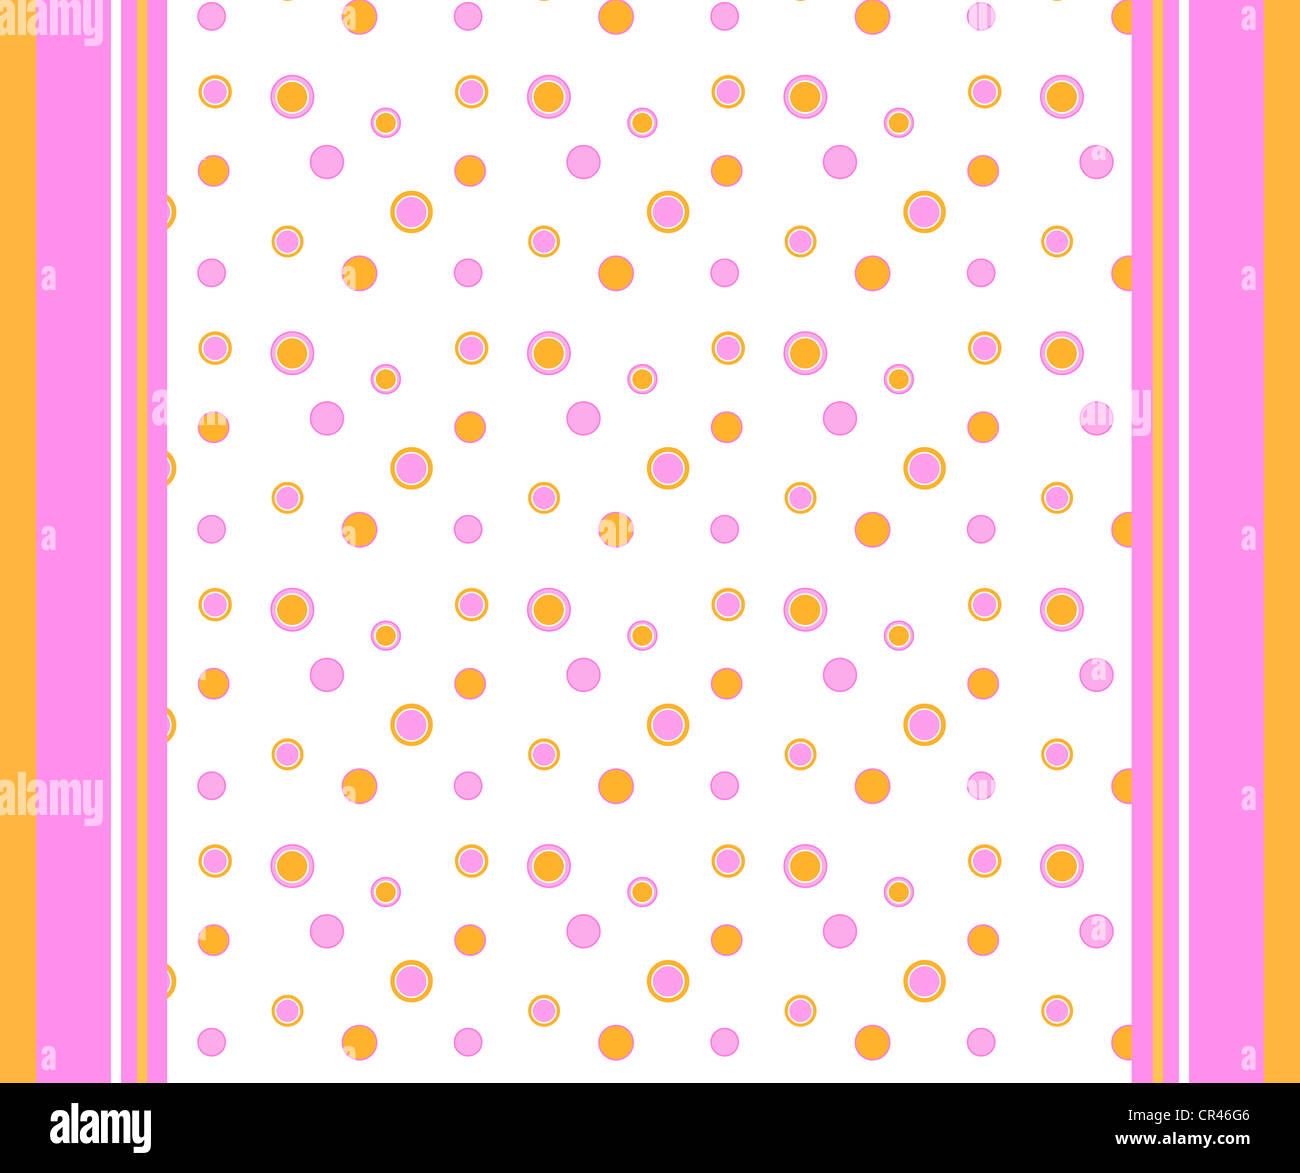 Polka dots and stripes pattern in bright orange and pink colors Stock Photo